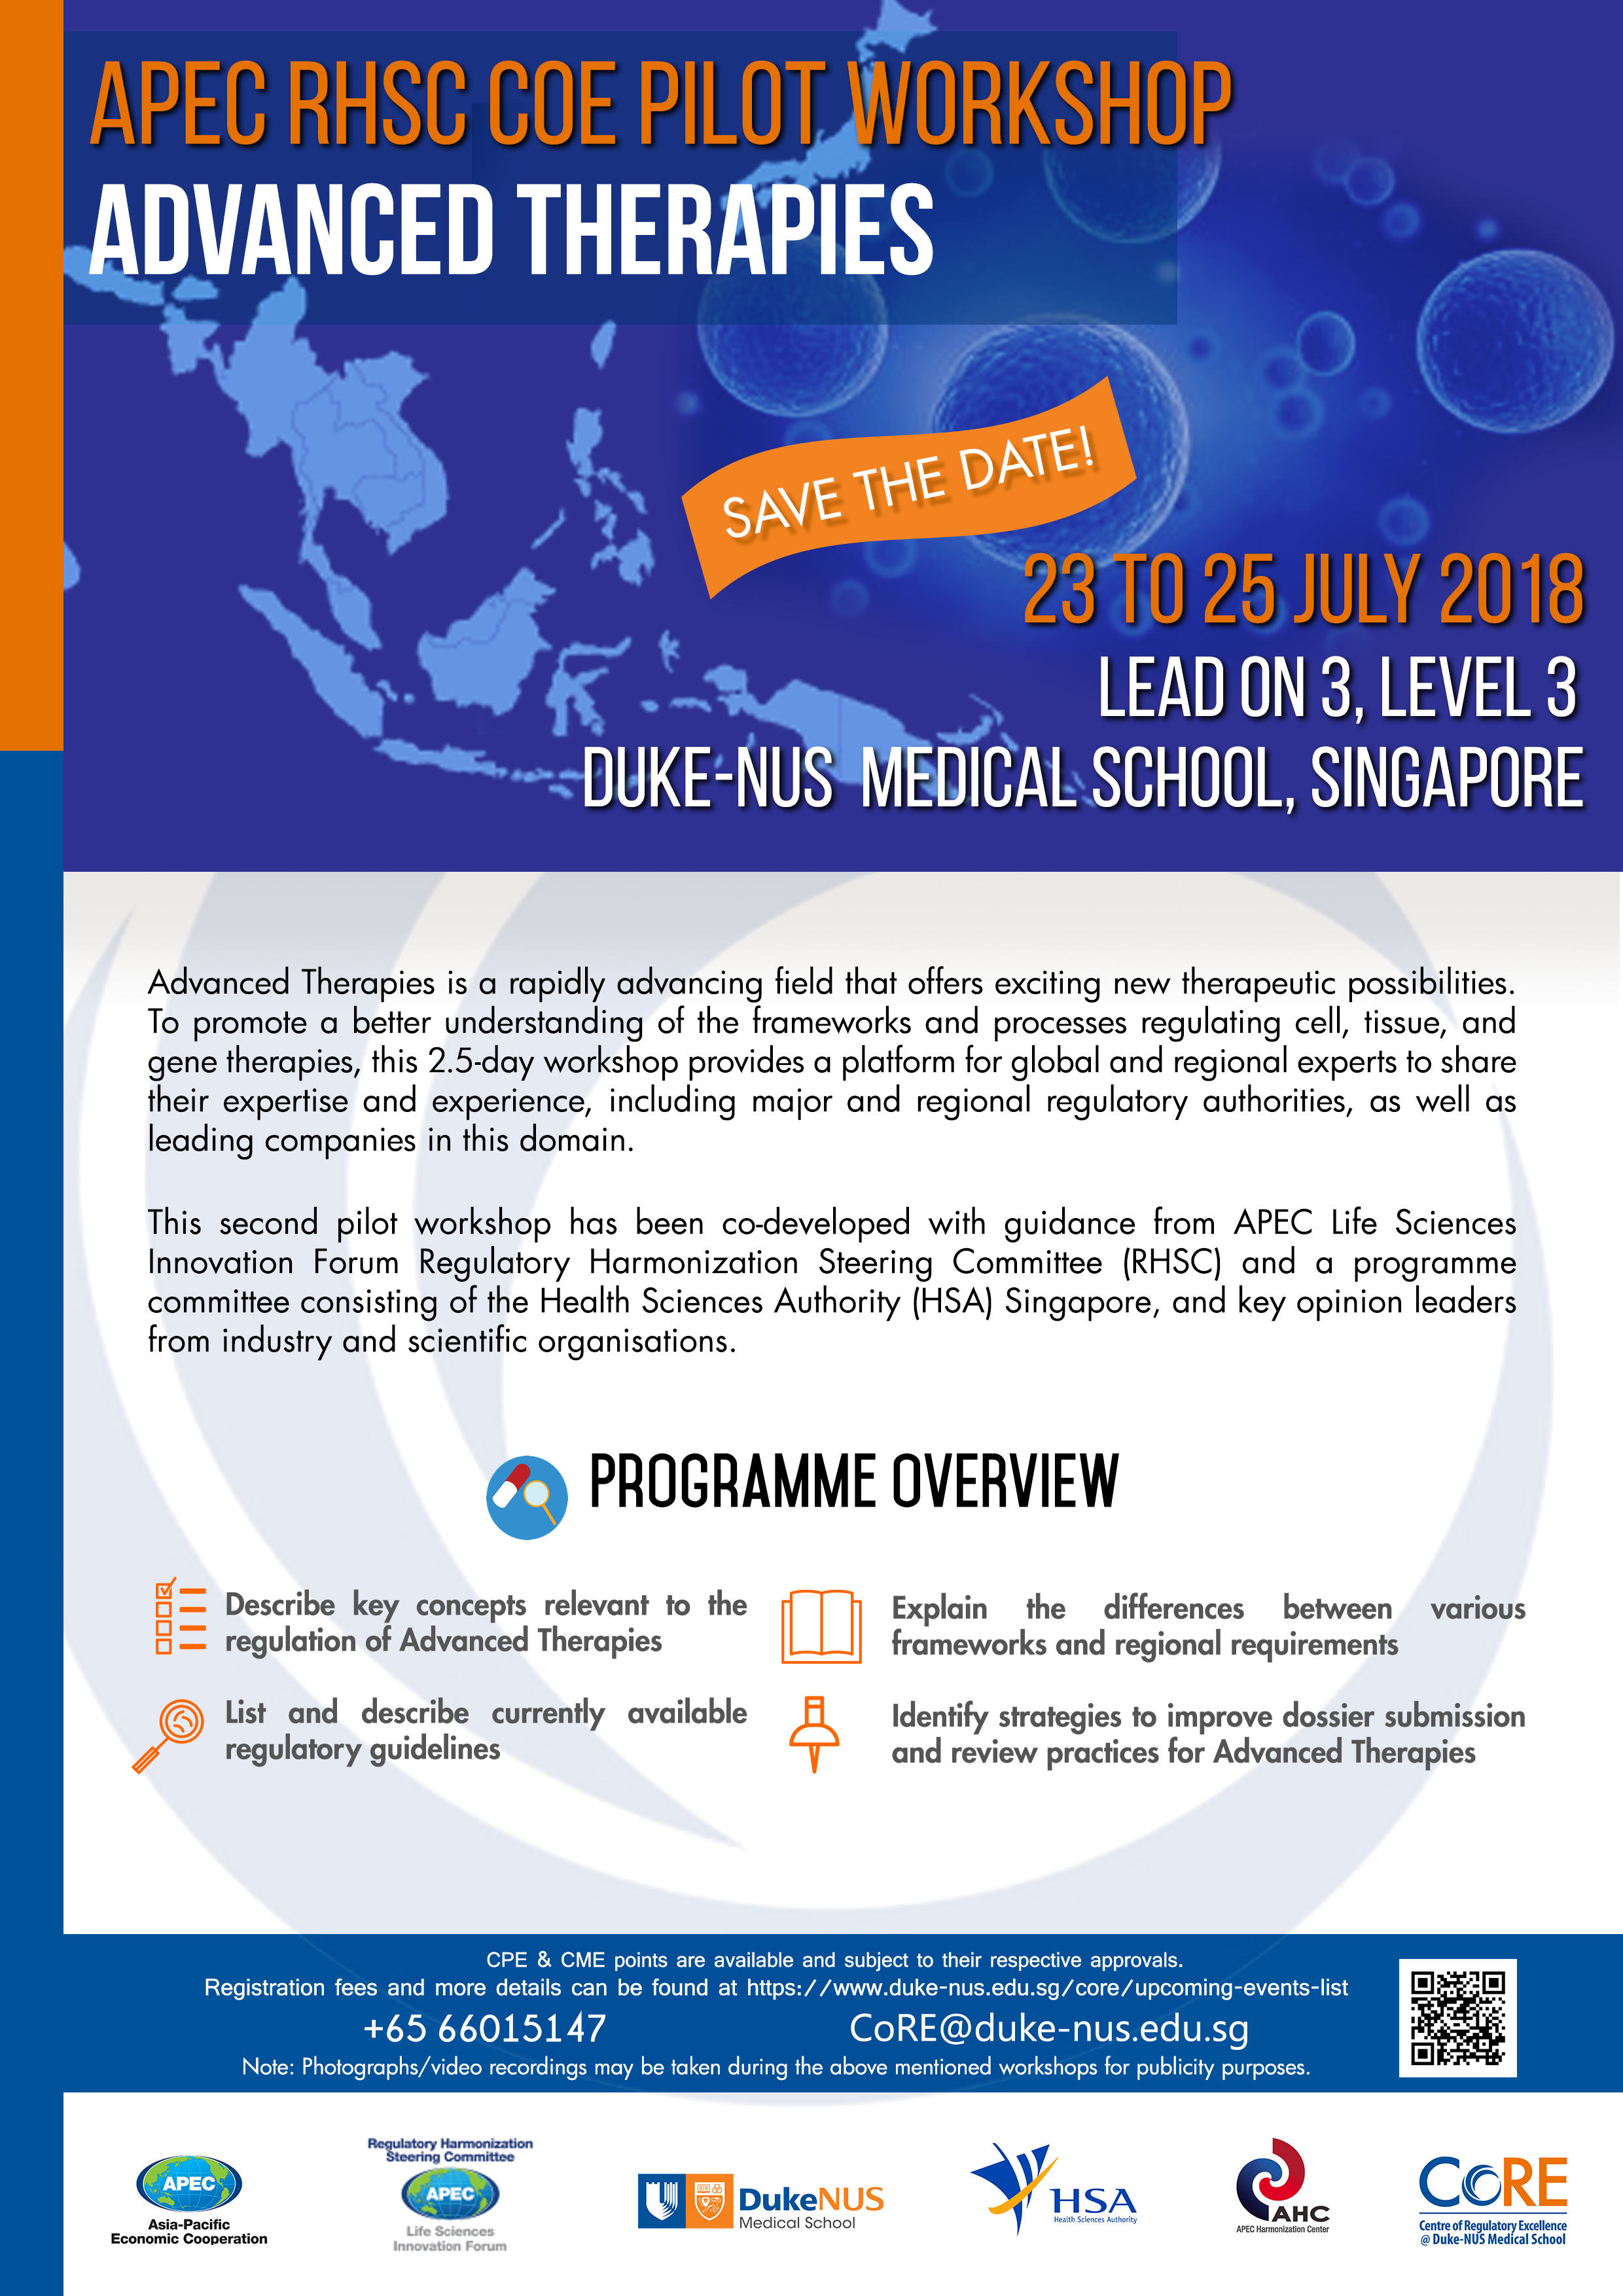 Save_the_Date_APEC_Center_Of_Excellence(CoE)_Pilot_Training